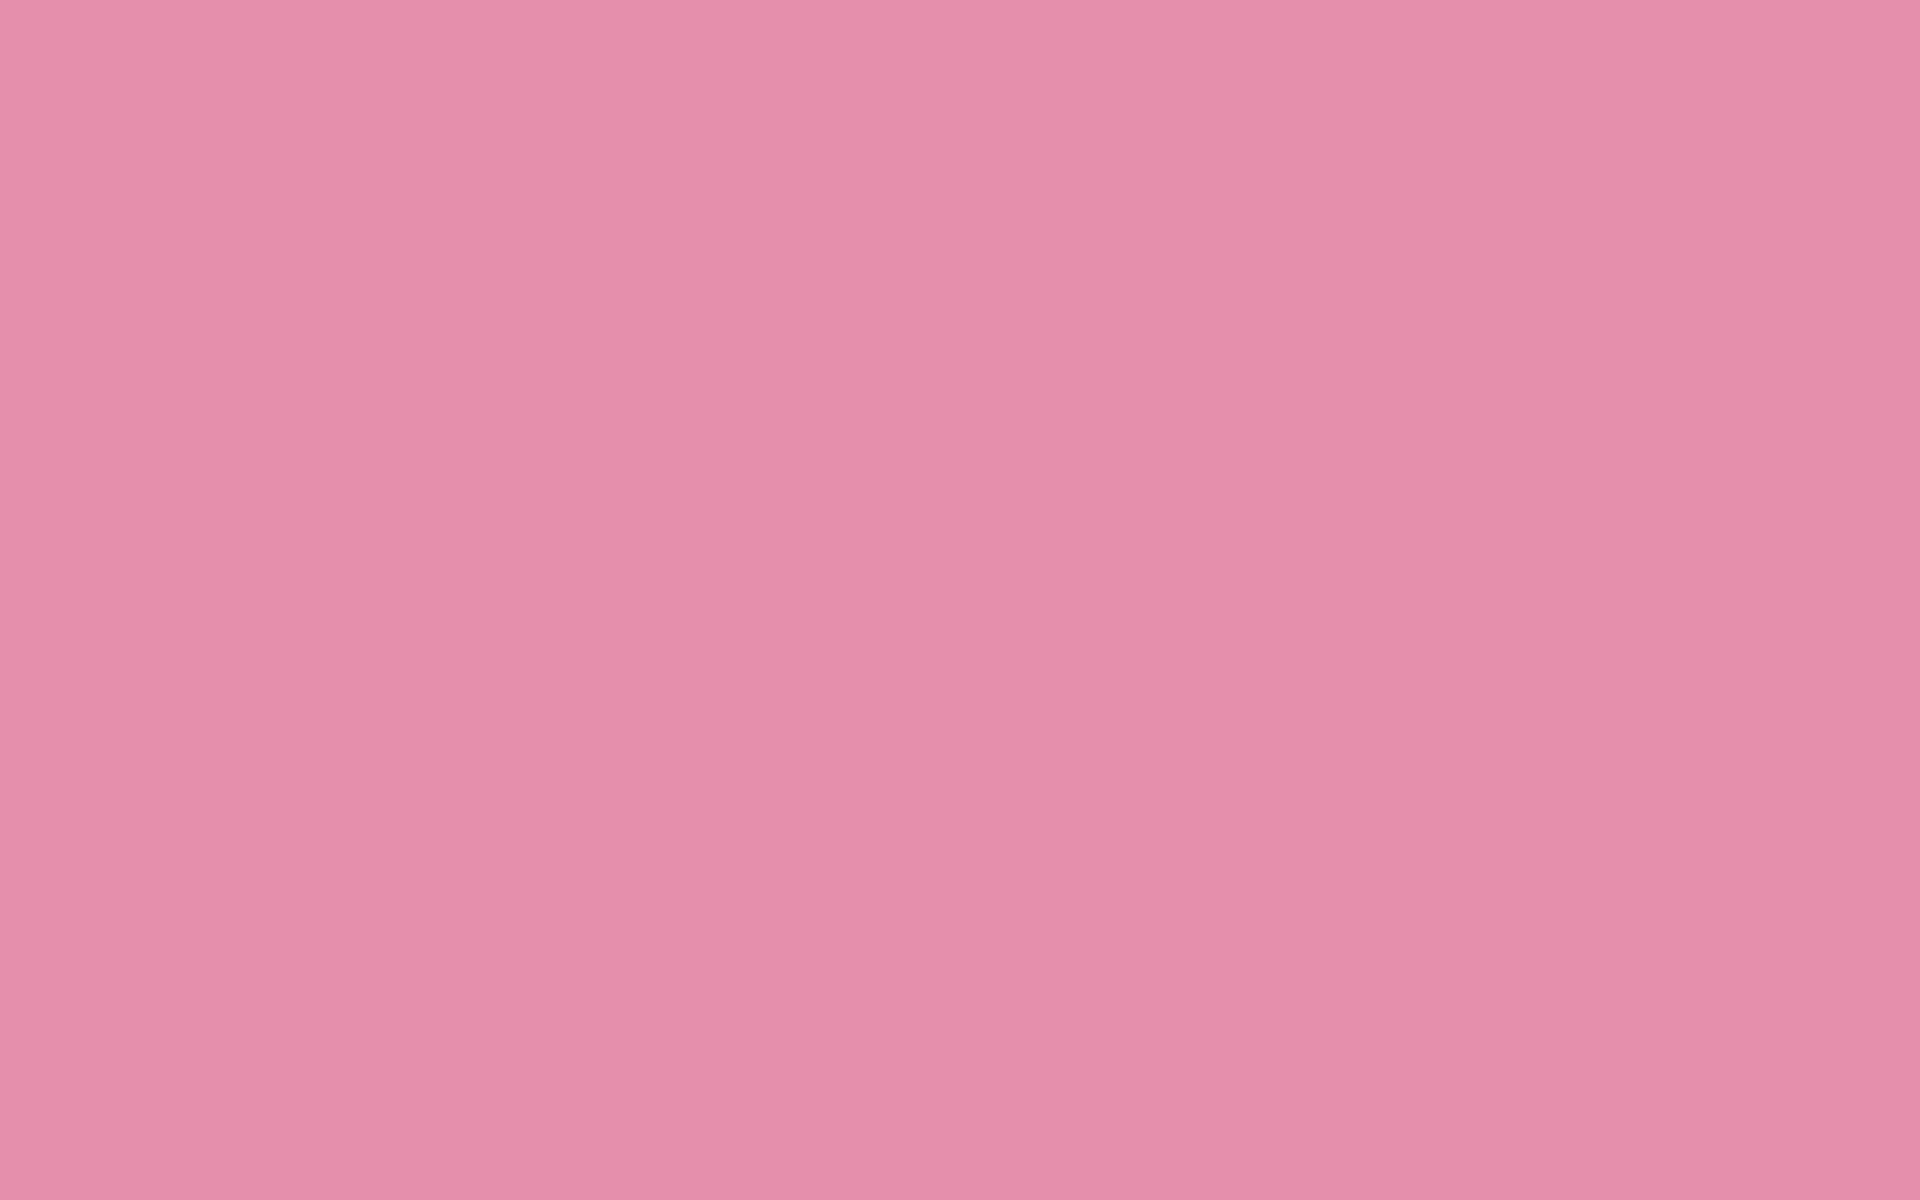 1920x1200 Charm Pink Solid Color Background